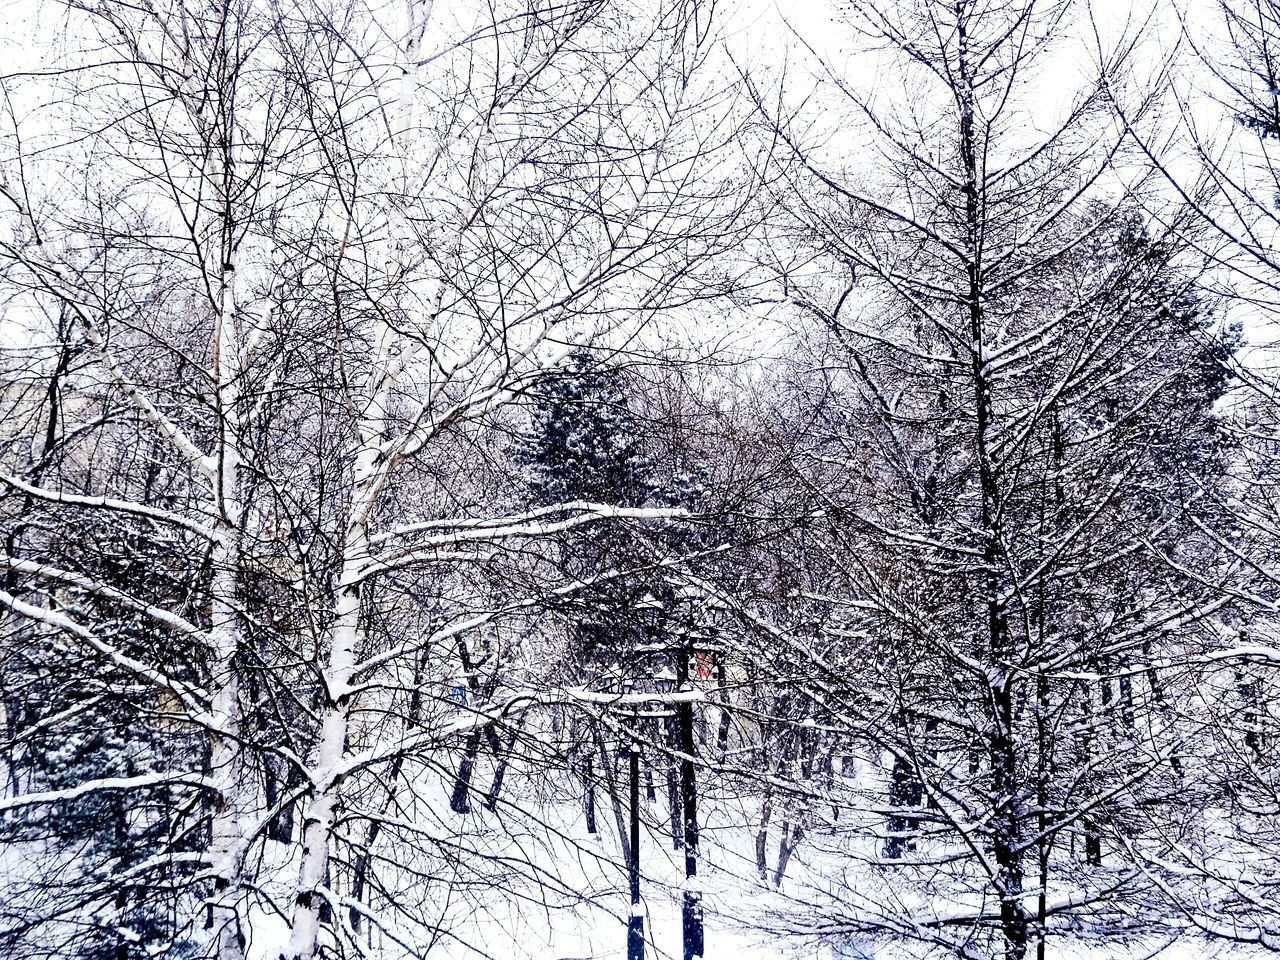 tree, winter, bare tree, snow, cold temperature, branch, nature, forest, beauty in nature, low angle view, day, no people, outdoors, frozen, snowing, sky